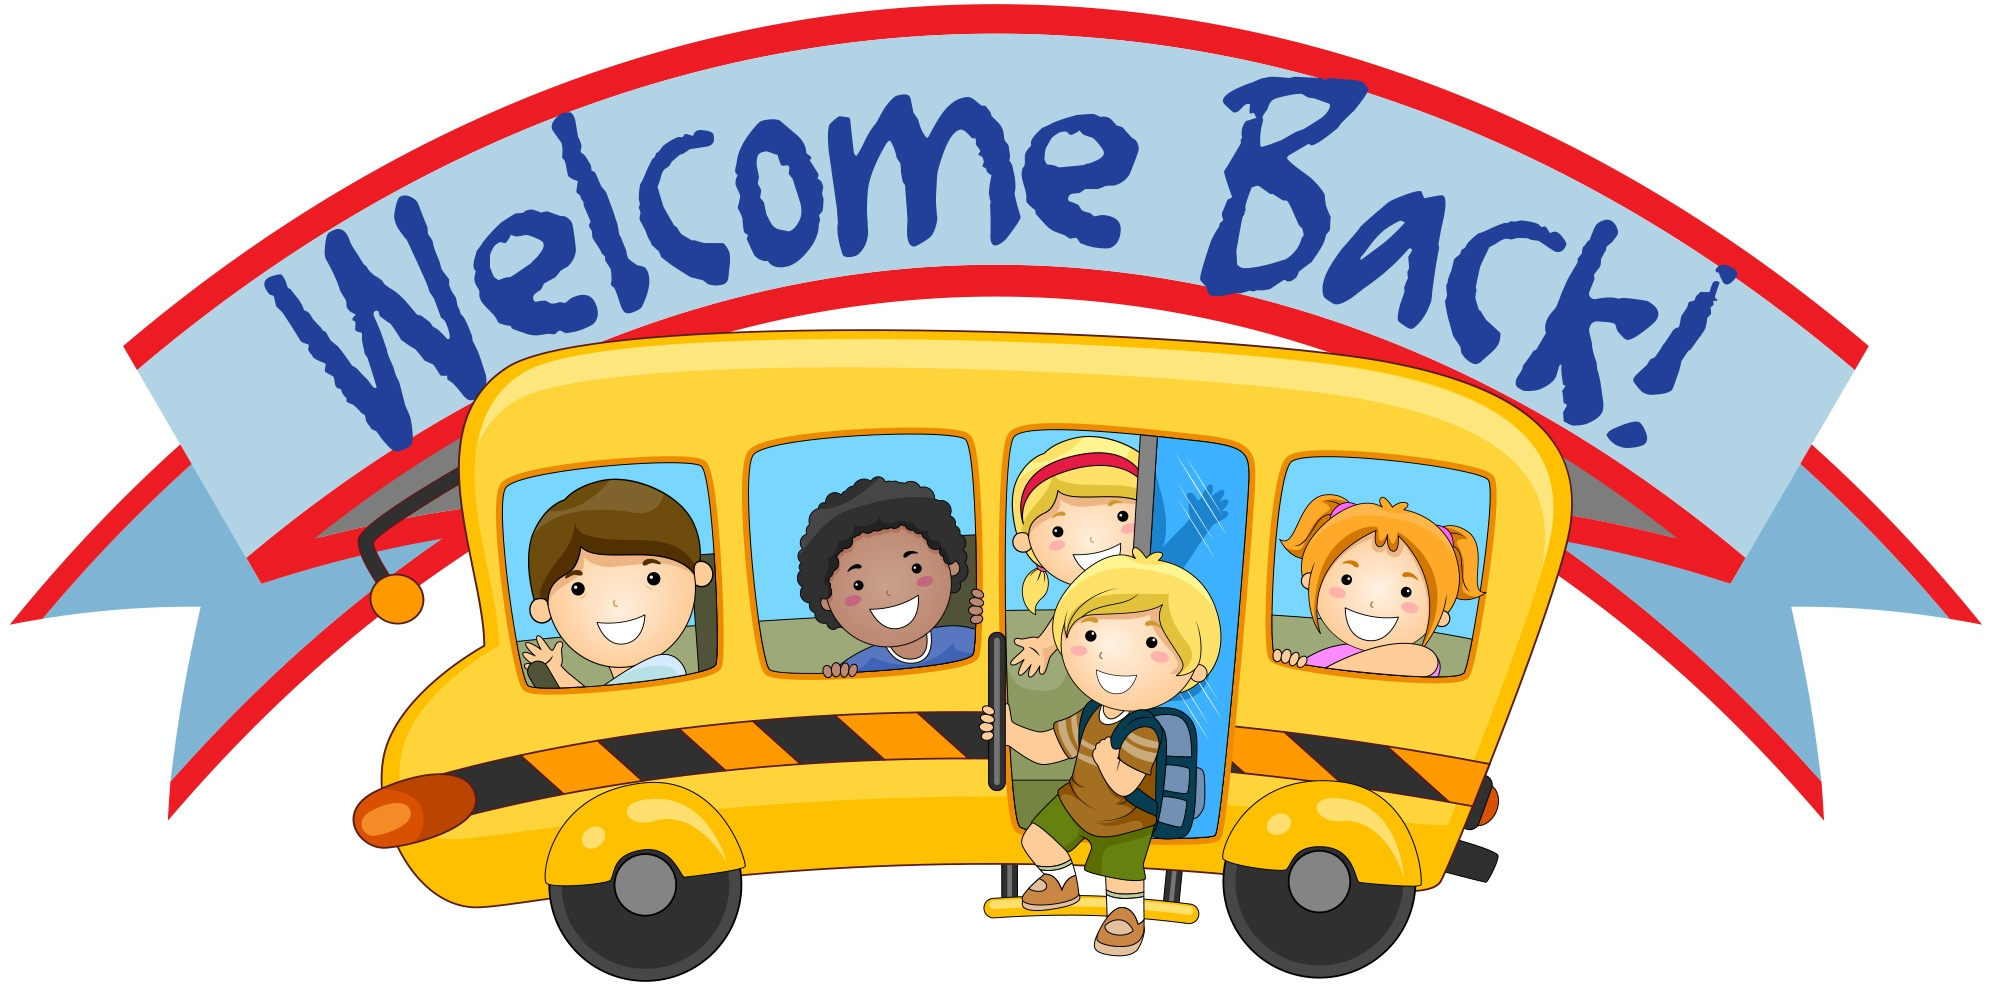 Welcomr back to school clipart graphic royalty free library Free Welcome Back To School Signs, Download Free Clip Art ... graphic royalty free library